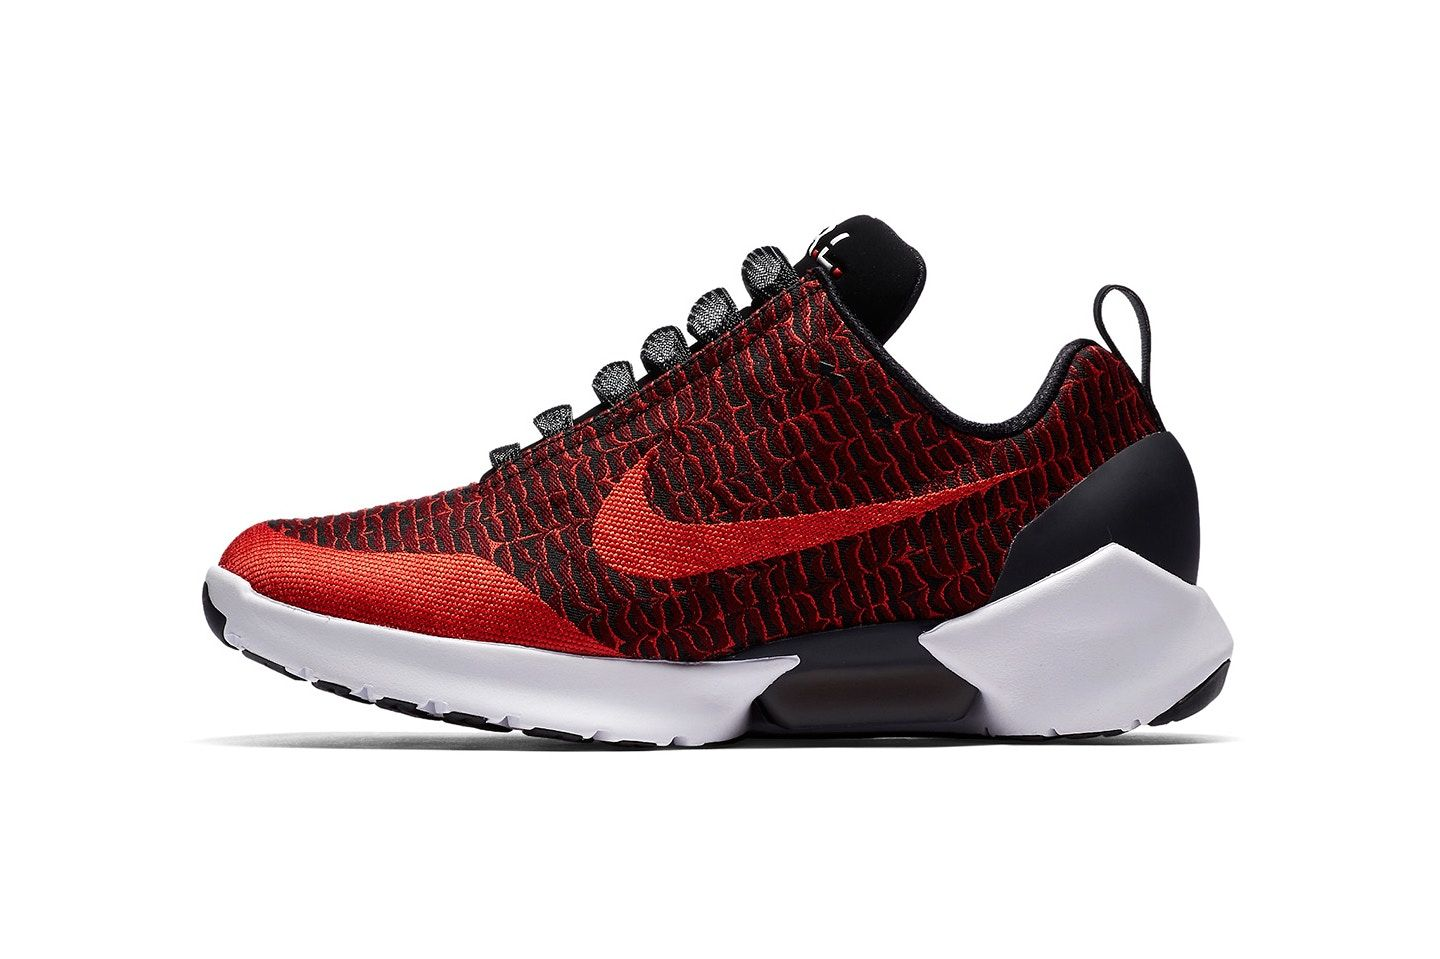 53c4f8e4daa ... discount nike hyperadapt 1.0 habanero red mens shoescasual e62d6 677d2  low cost nike free run leather men black ...